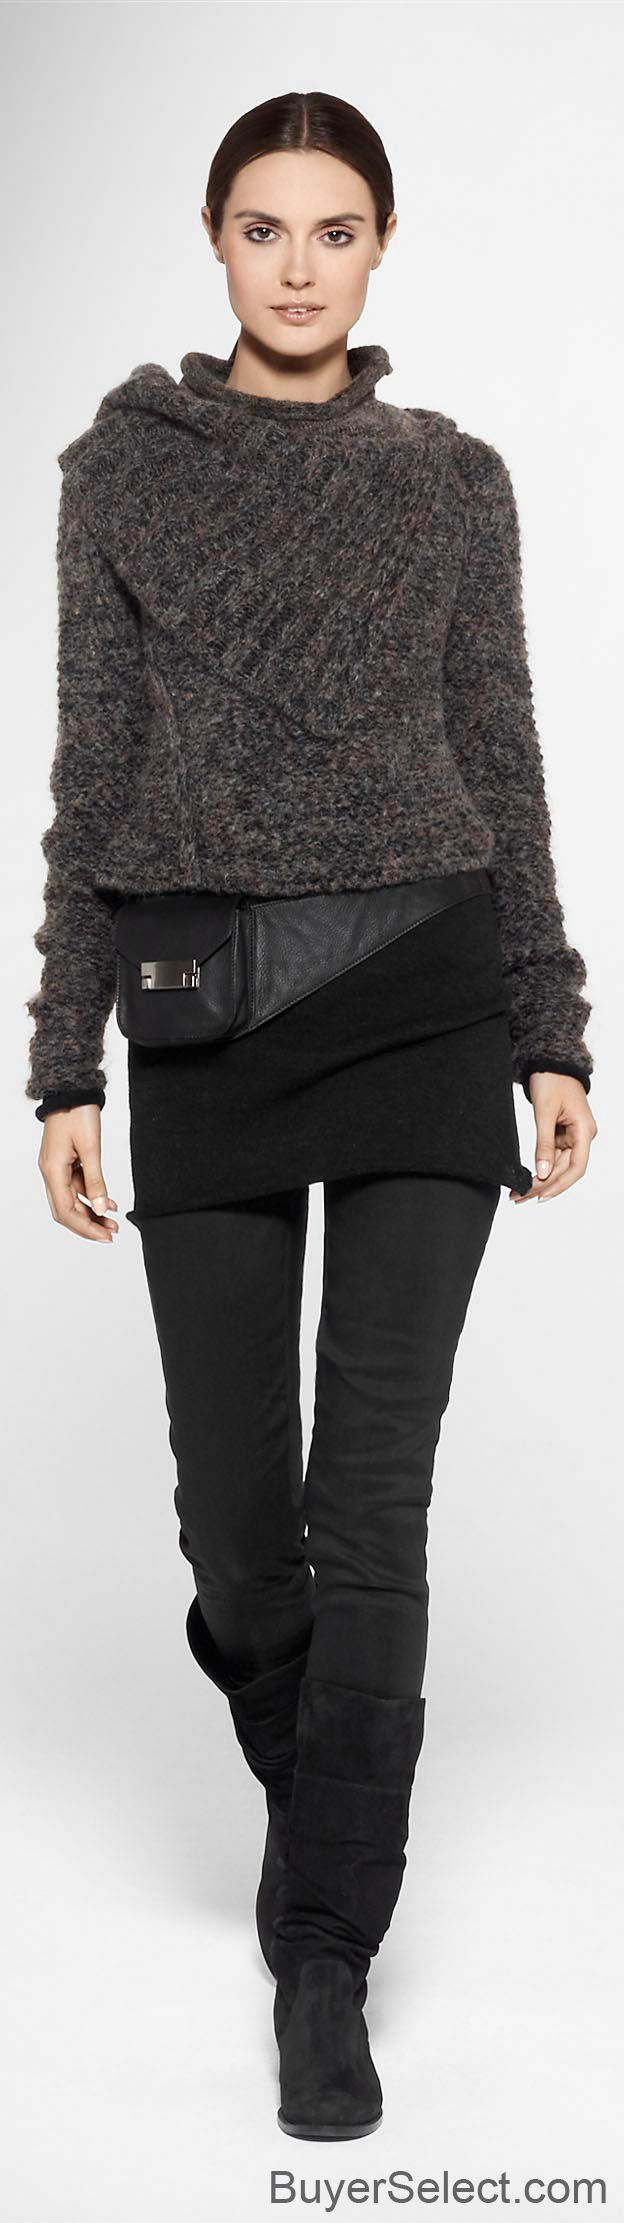 806 best knit 2 images on Pinterest | Oversized sweaters ...